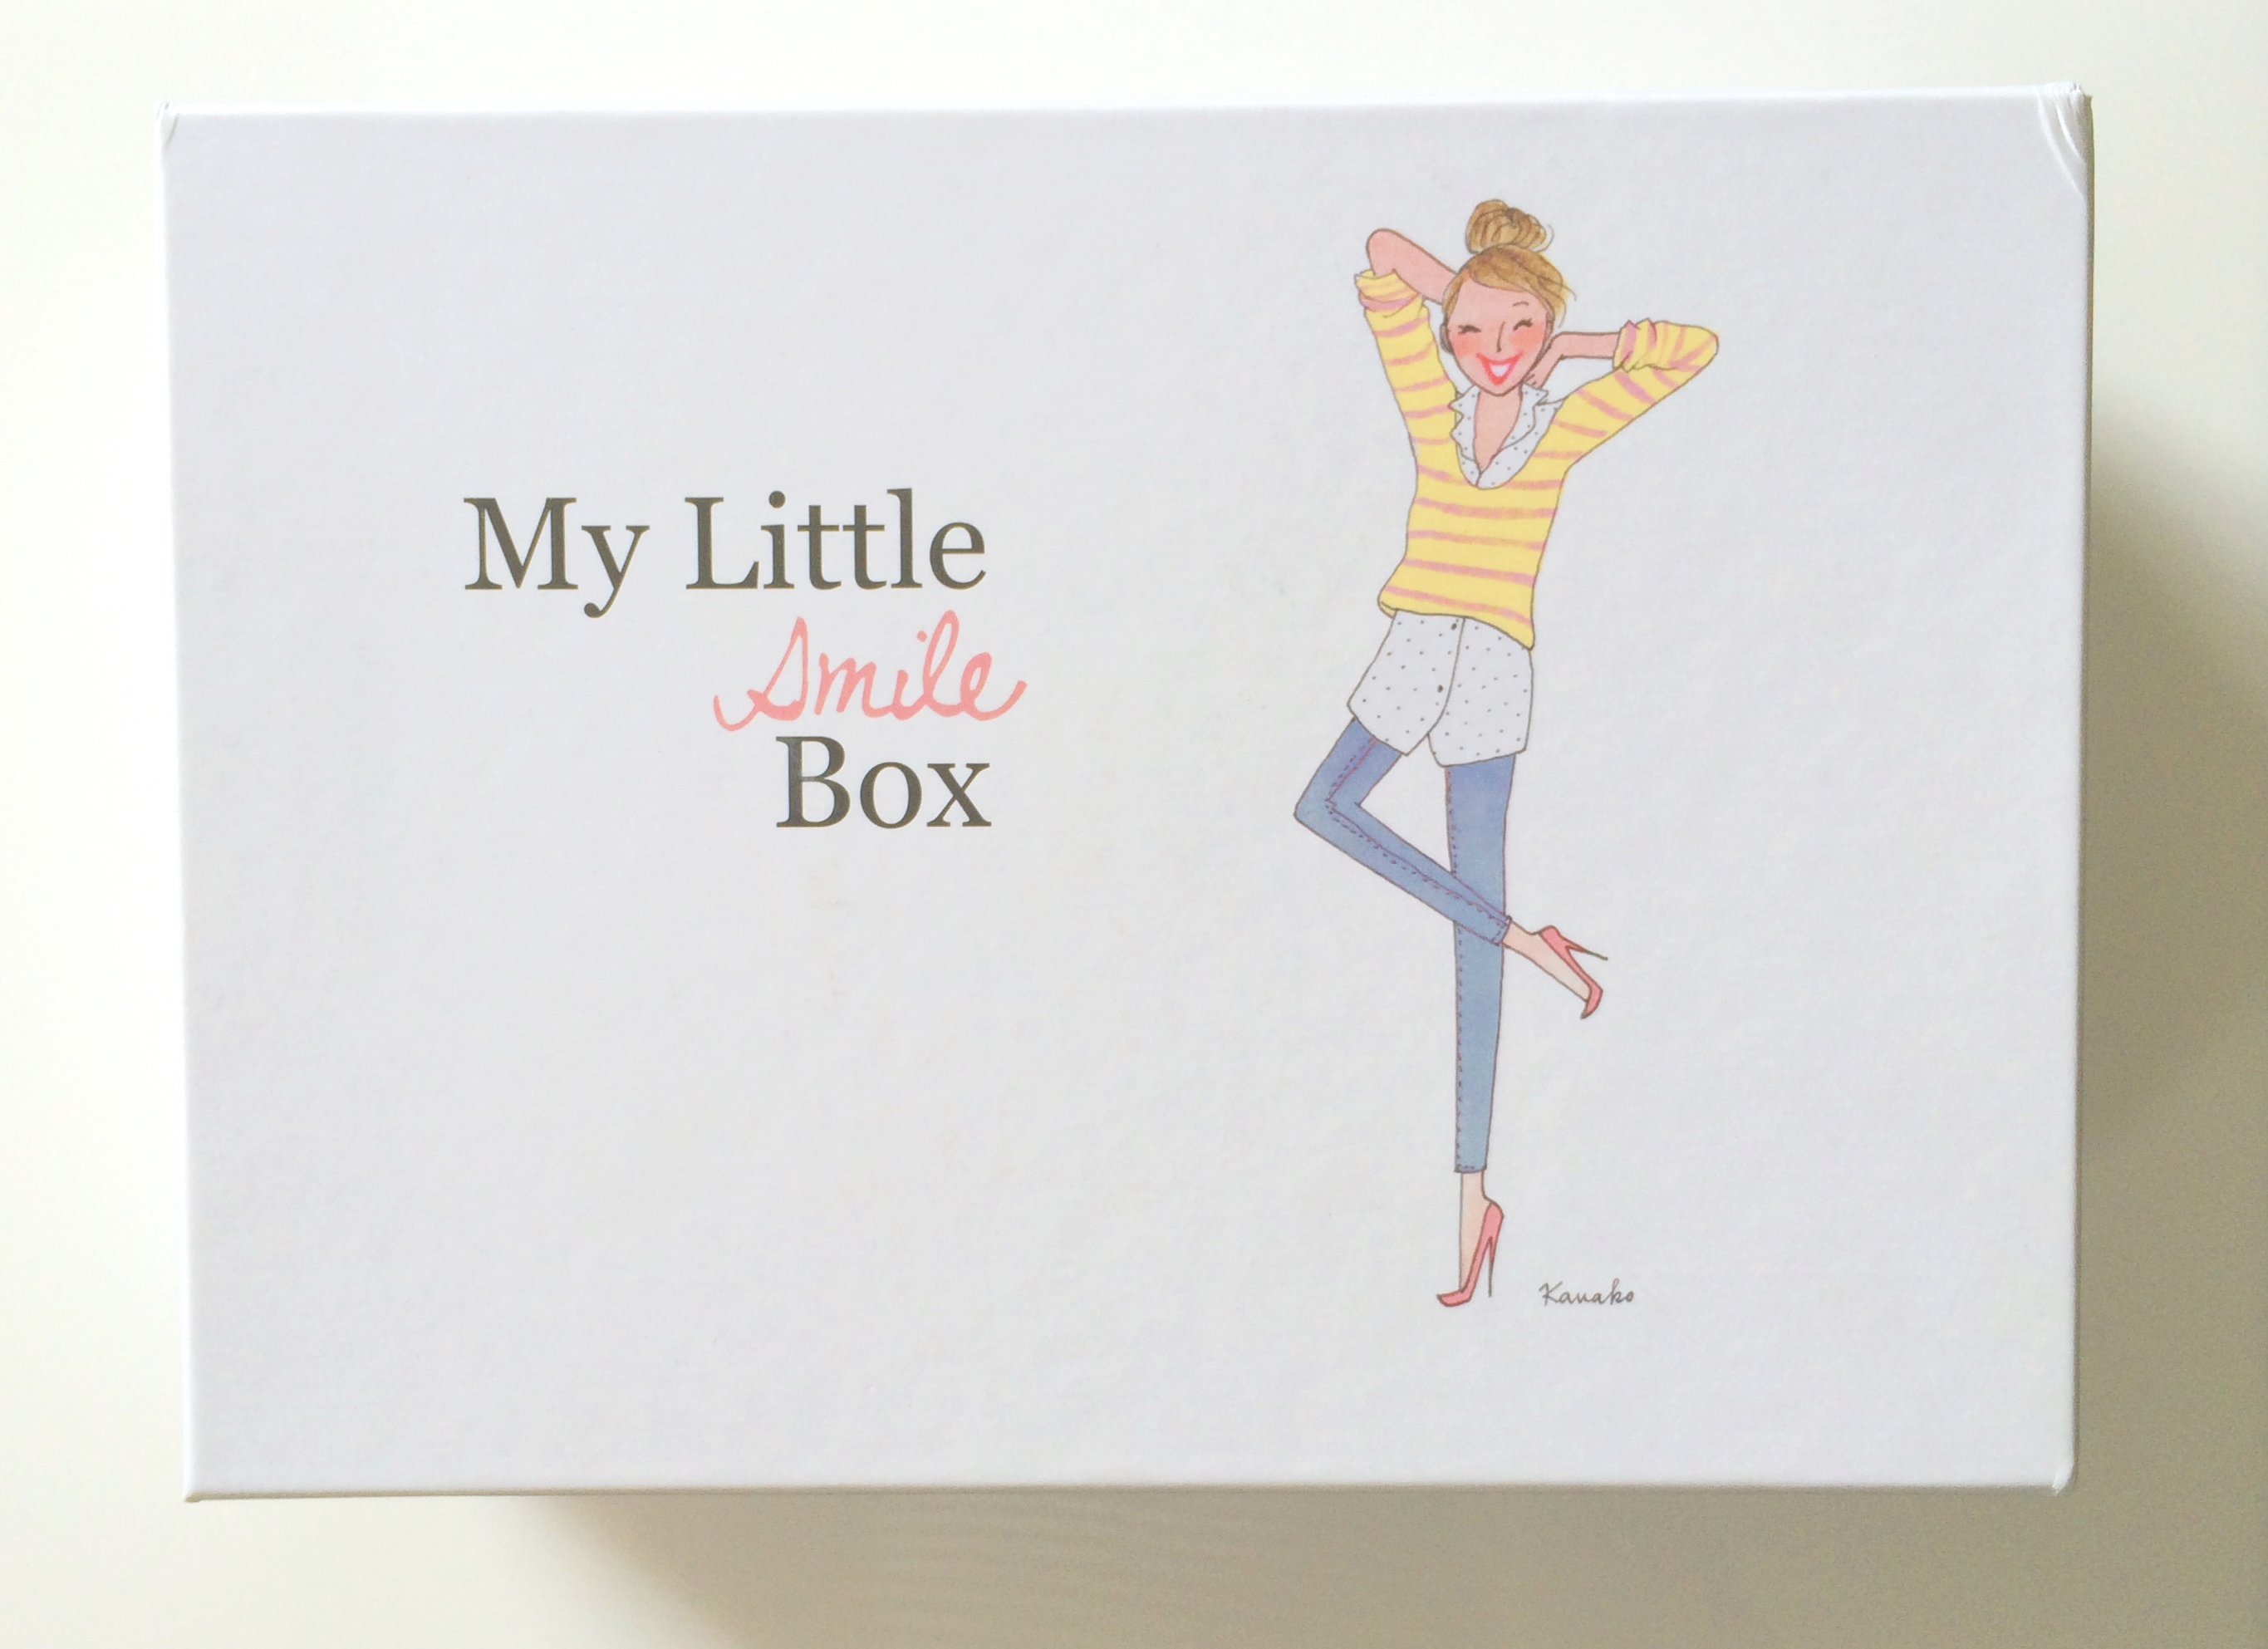 My Little Box review - Bunnipunch